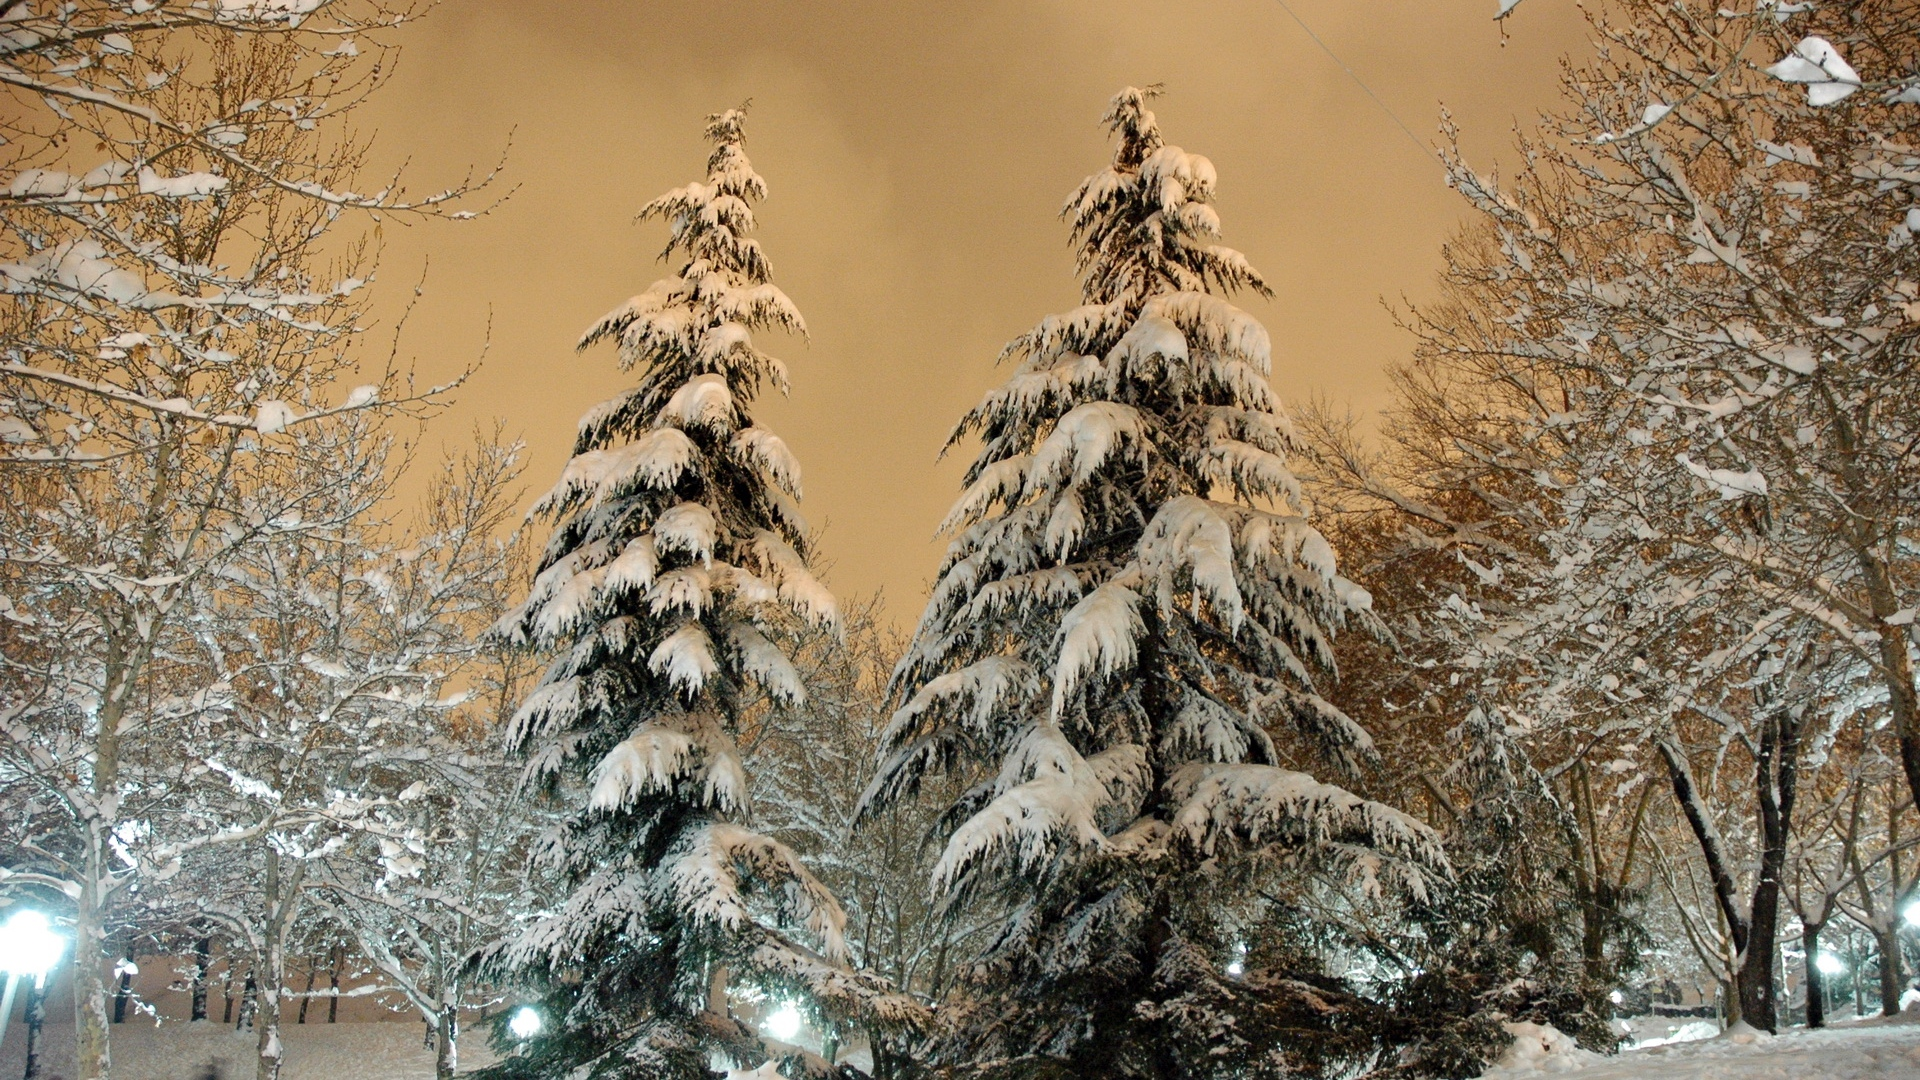 park fir trees snow light lamp sky heavy clouds winter snowdrifts cover